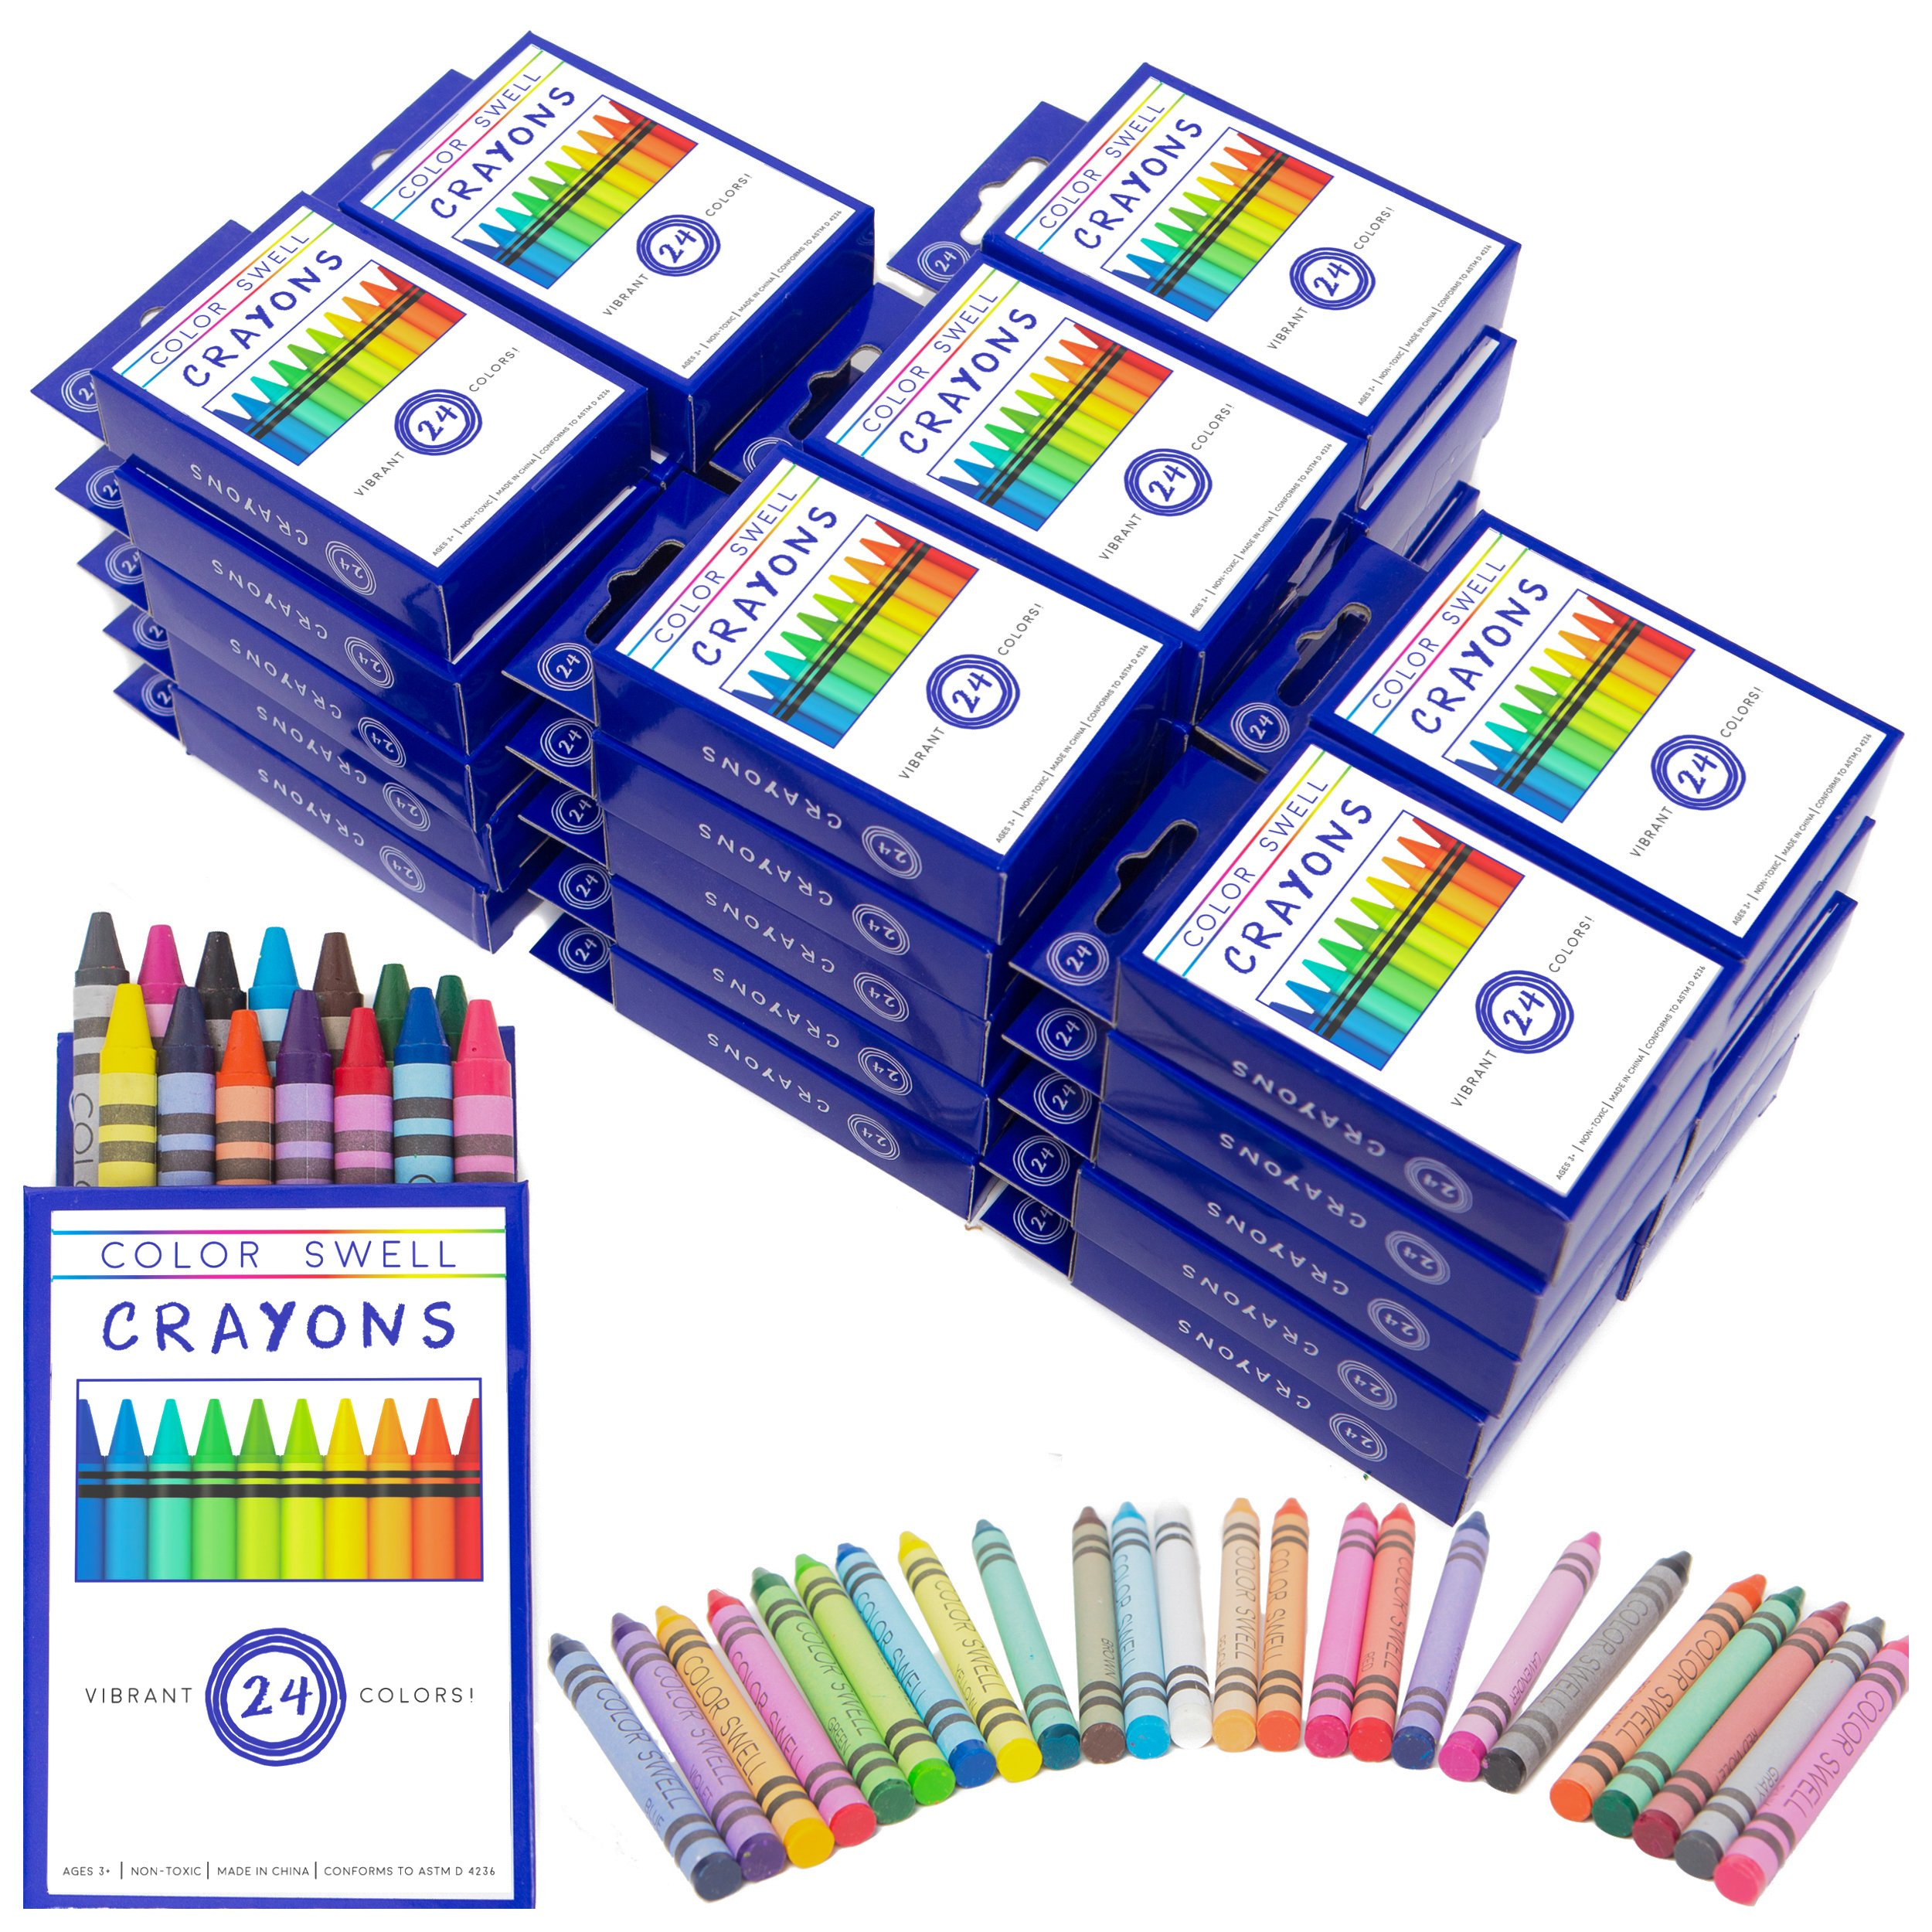 Crayons Bulk 36 Packs of 24 Count Vibrant Colors Teacher Quality Durable Classroom Pack for Kids Students Party Favors by Color Swell